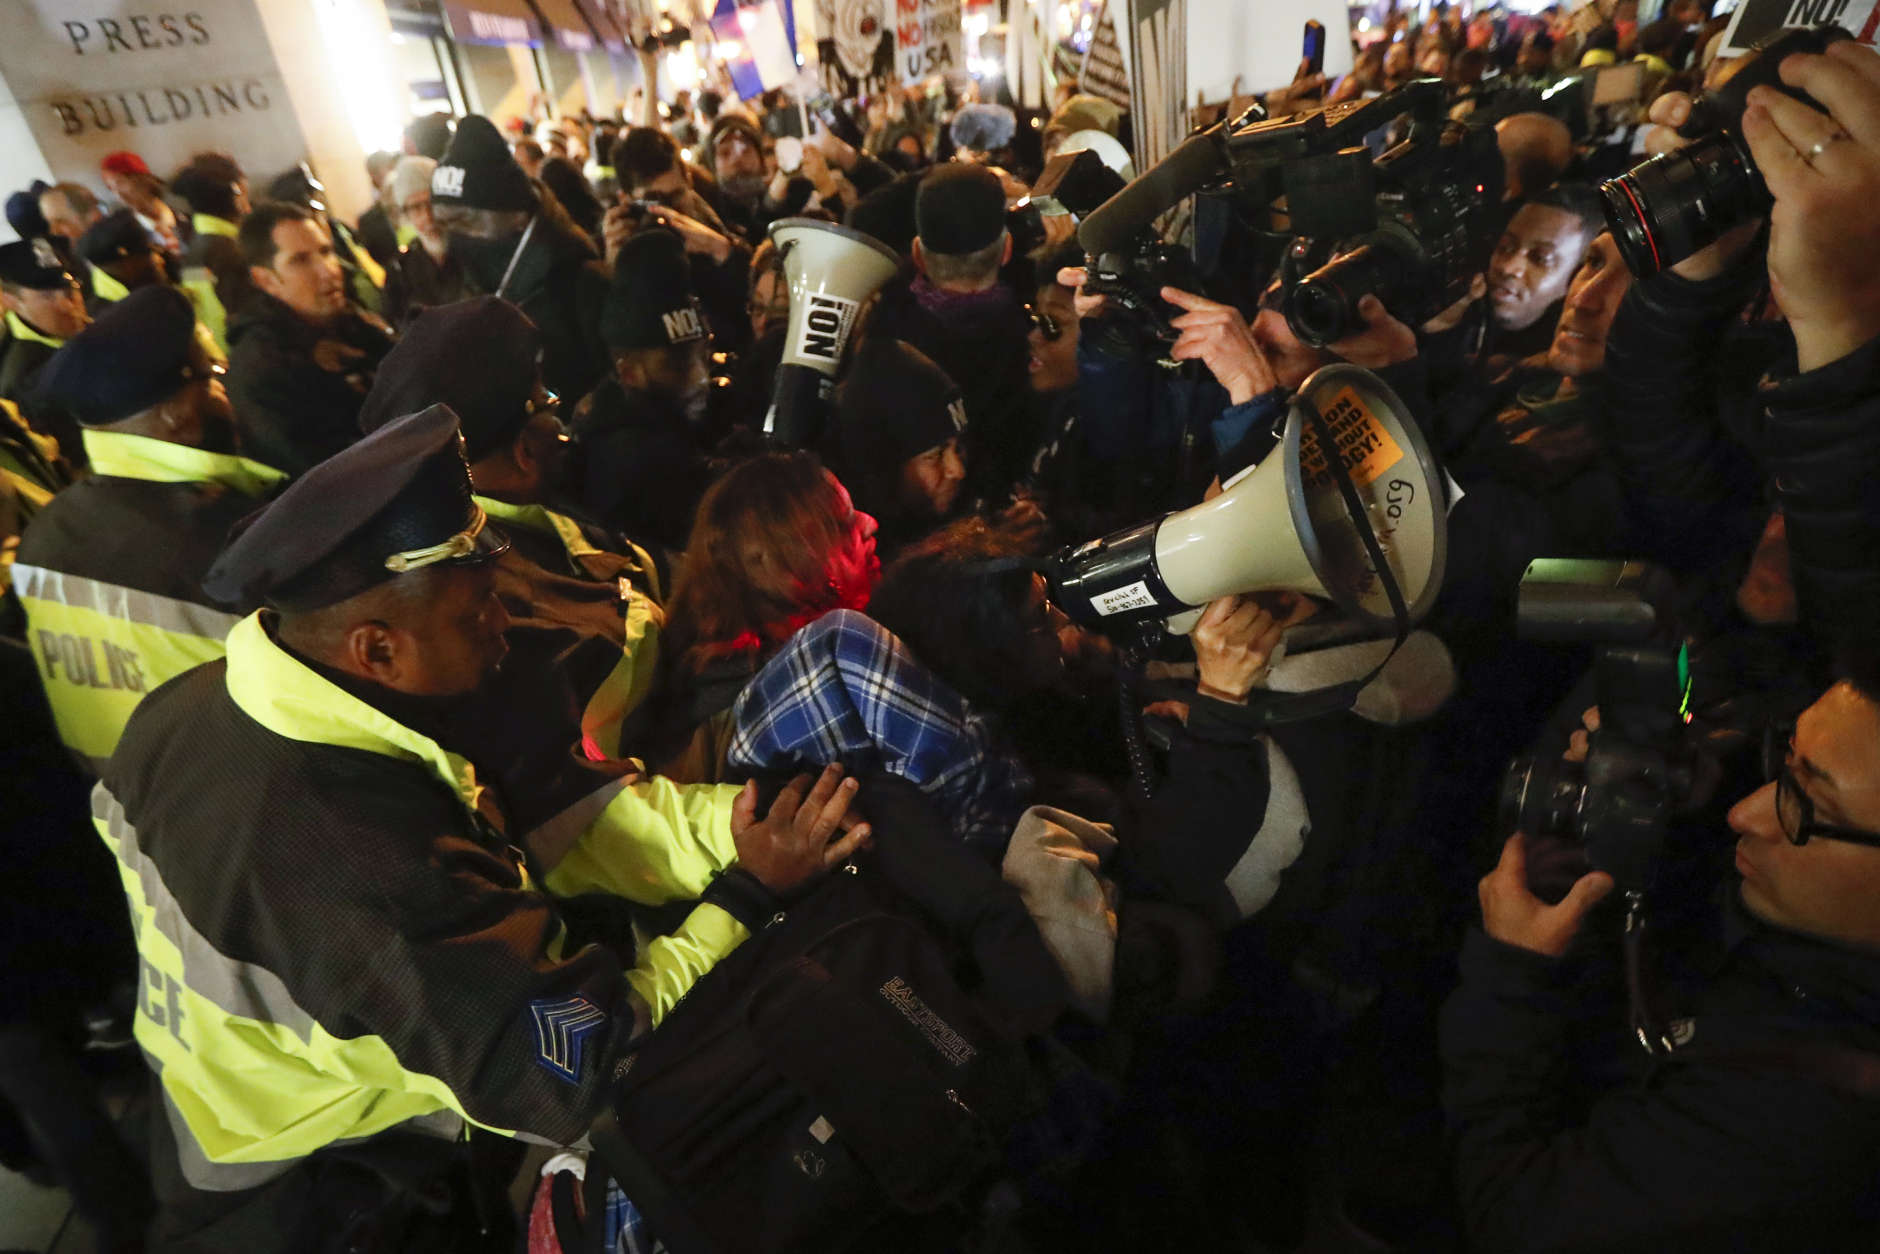 Protesters scuffle with police after refusing to vacate the sidewalk in front of the National Press Club Building ahead of the presidential inauguration, Thursday, Jan. 19, 2017, in Washington. (AP Photo/John Minchillo)